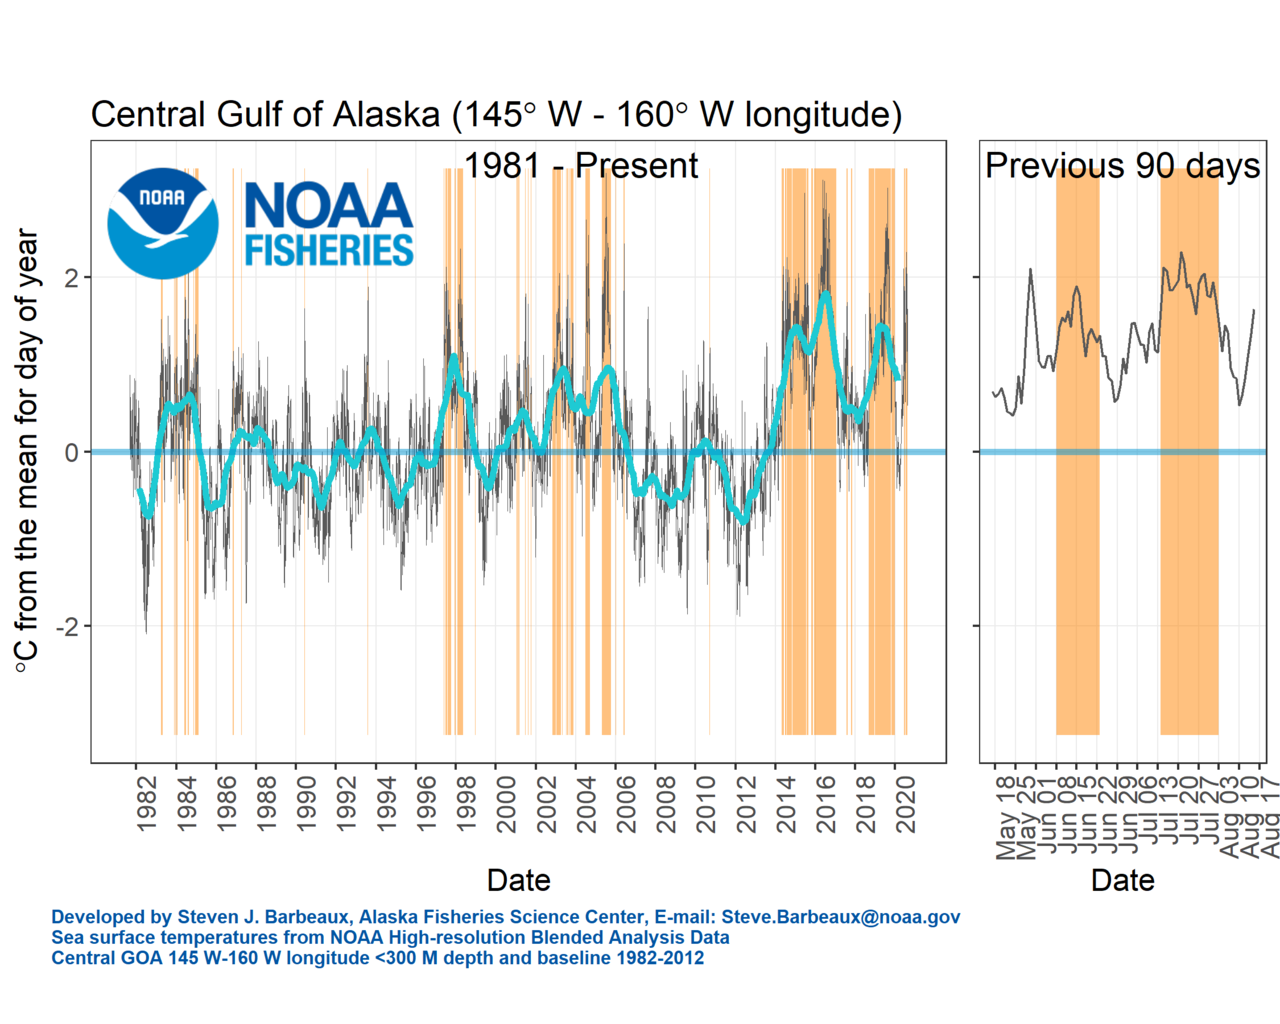 Graph of sea surface temperature anomaly and marine heatwave conditions in the central Gulf of Alaska as of July 11, 2020.